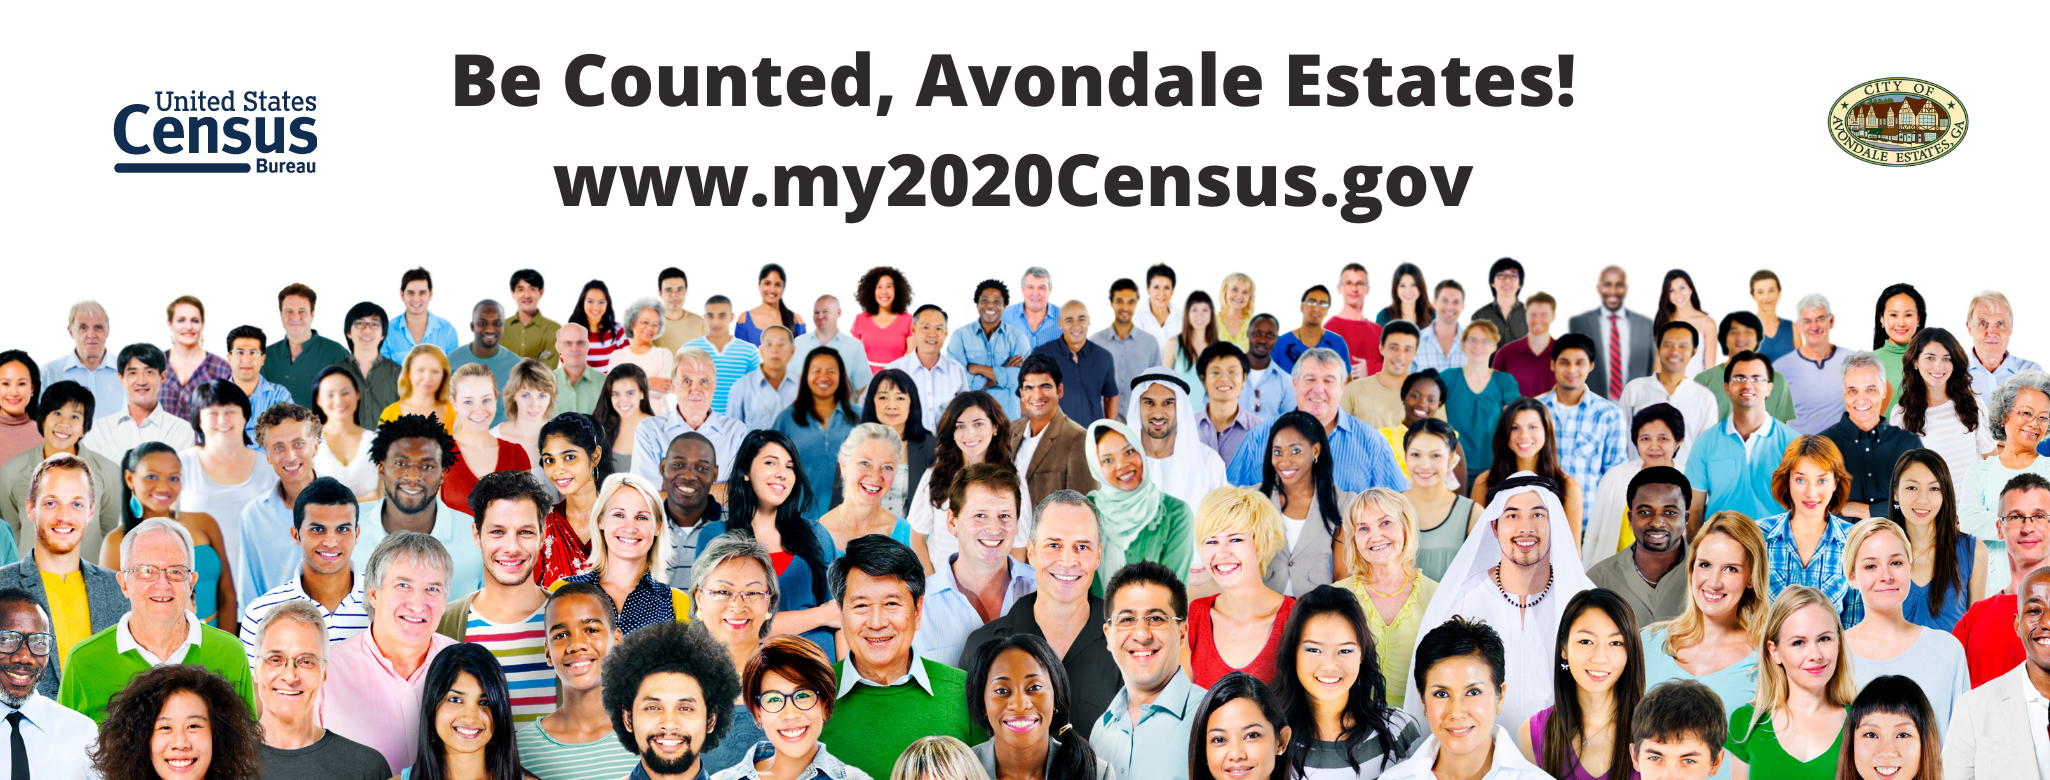 Be Counted, Avondale Estates!